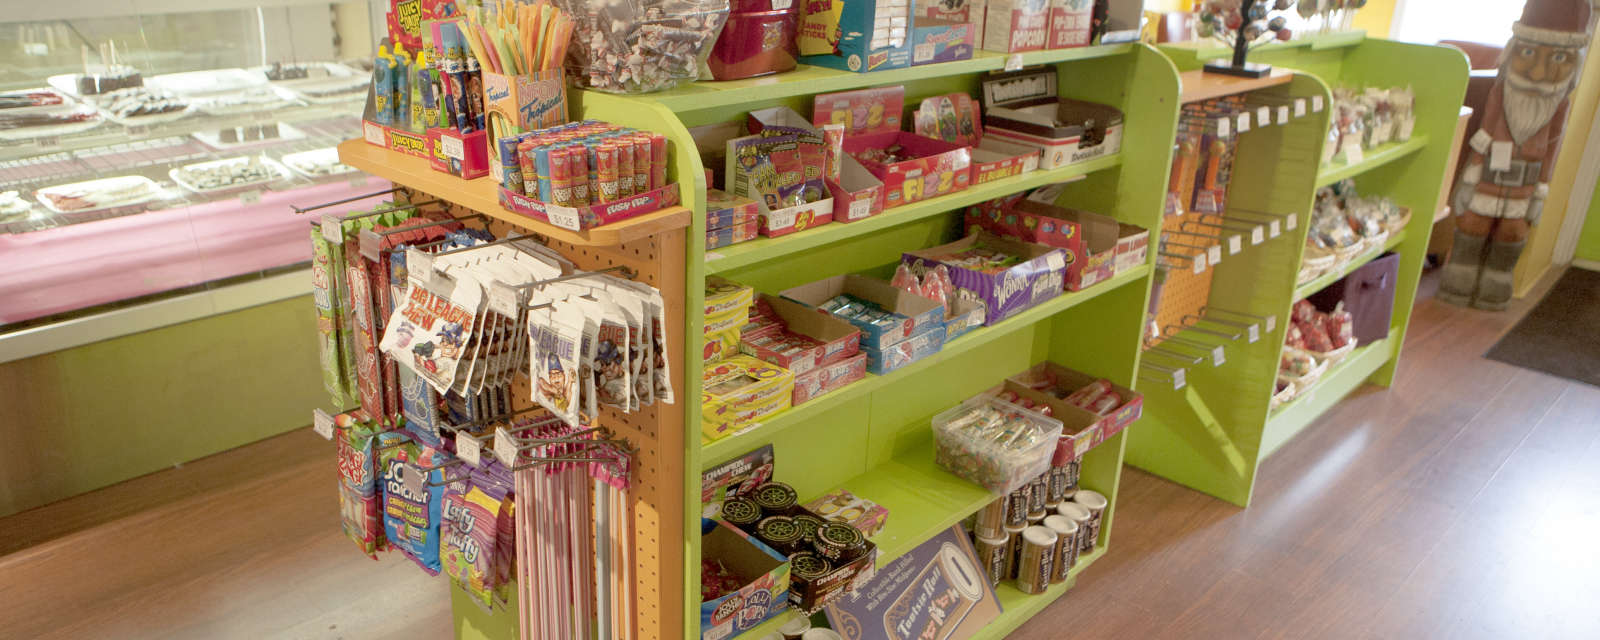 Confections & Novelties